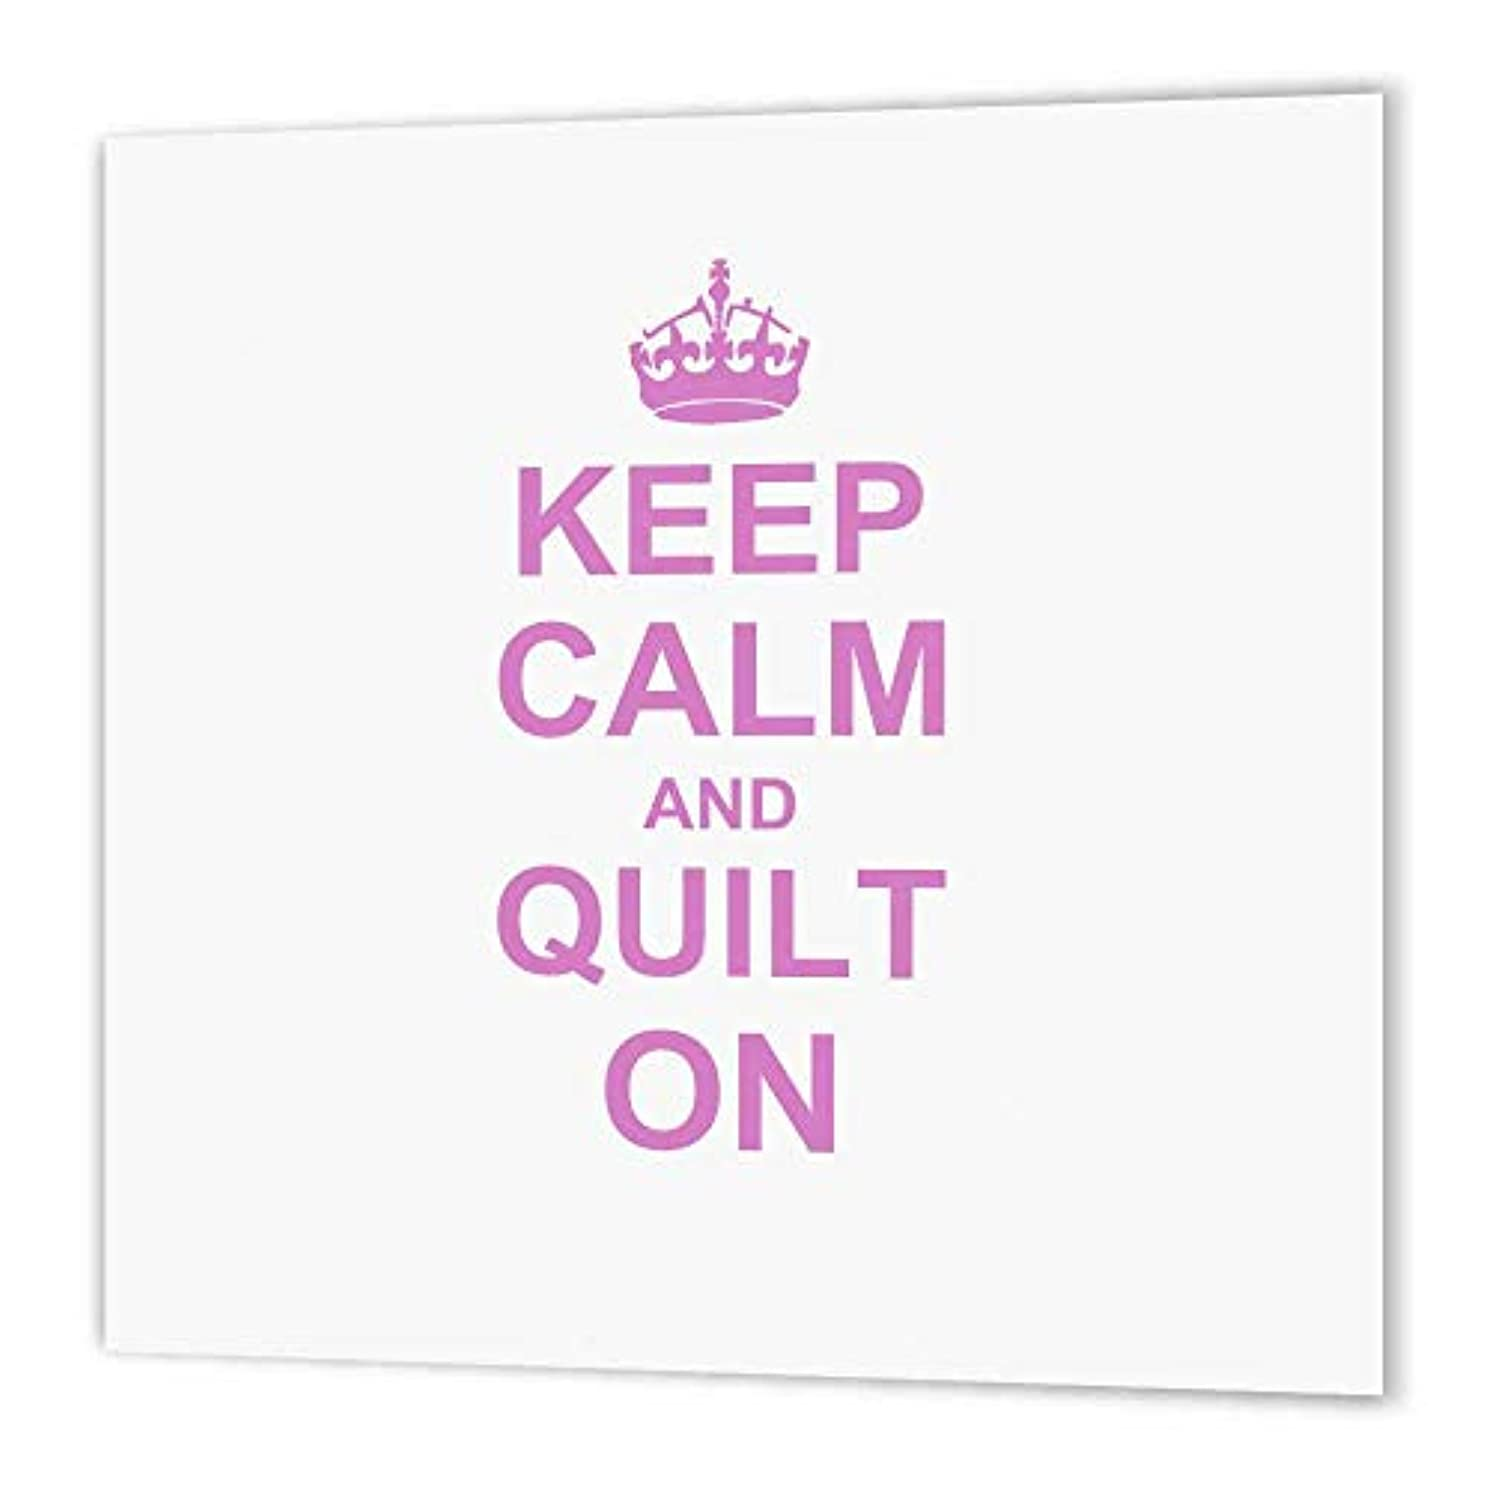 3dRose ht_157760_3 Keep Calm and Quilt on Carry on Quilting Quilter Gifts Pink Fun Humor- Iron on Heat Transfer, 10 by 10-Inch, for White Material